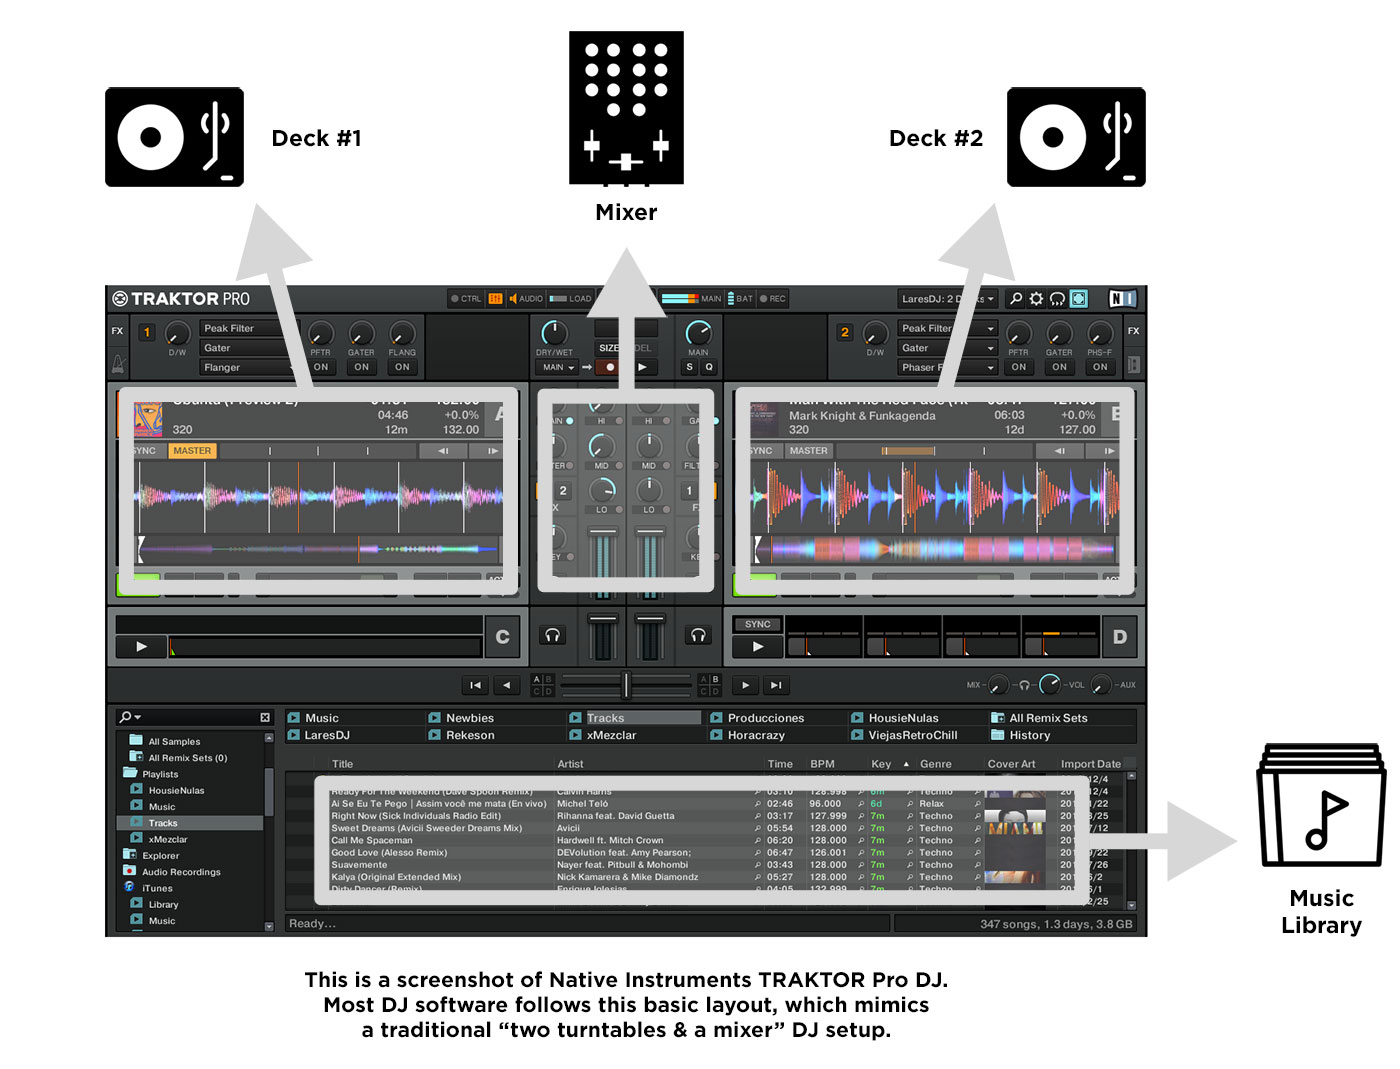 DJ software layout